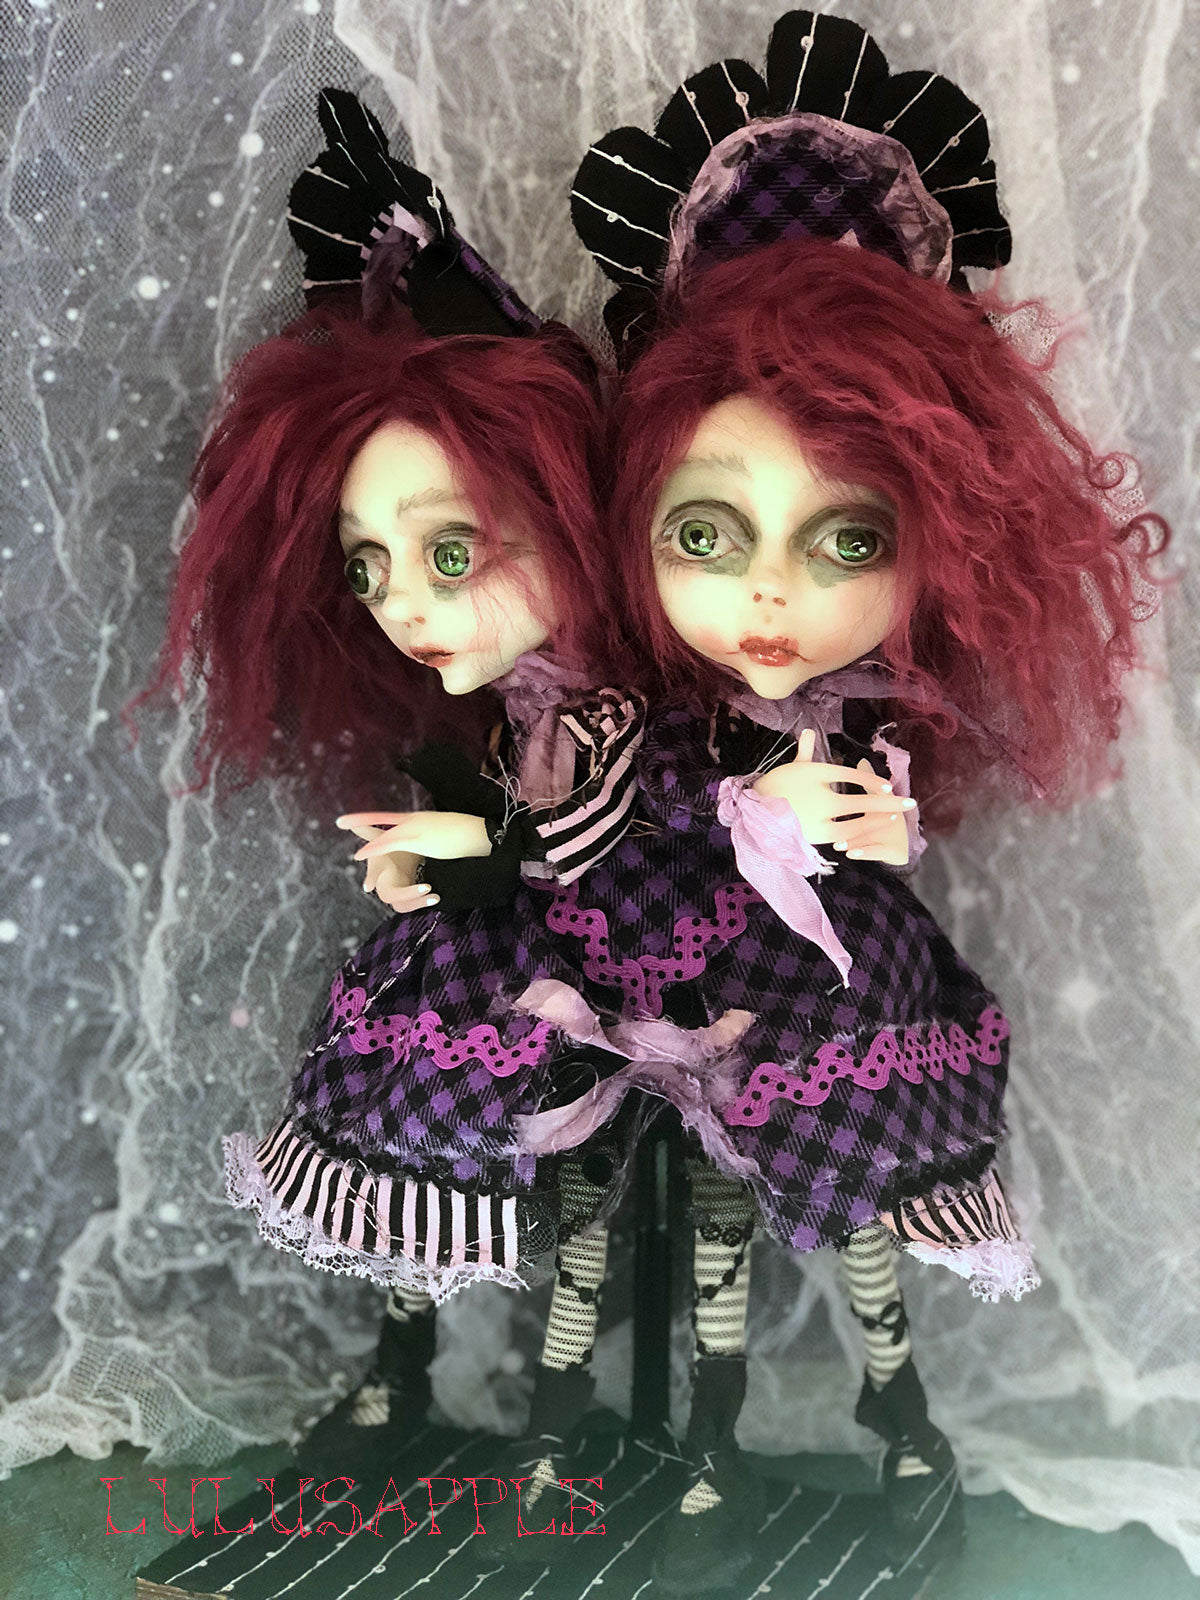 Affrey and Amy Conjoined Gothic Victorian Twins OOAK Art Dolls LuLusApple